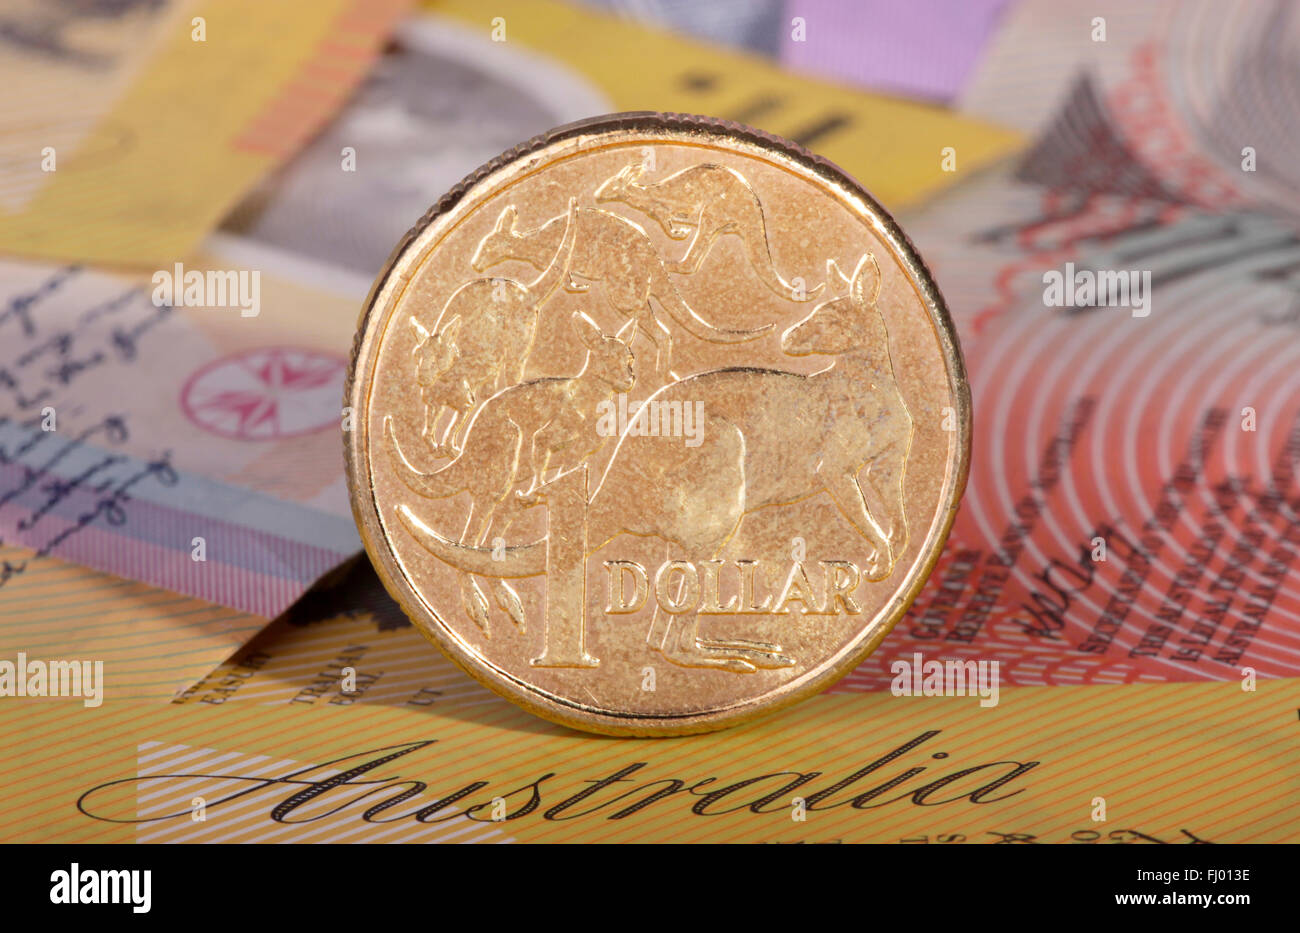 One Australian dollar coin with a background of Australian bank notes. - Stock Image